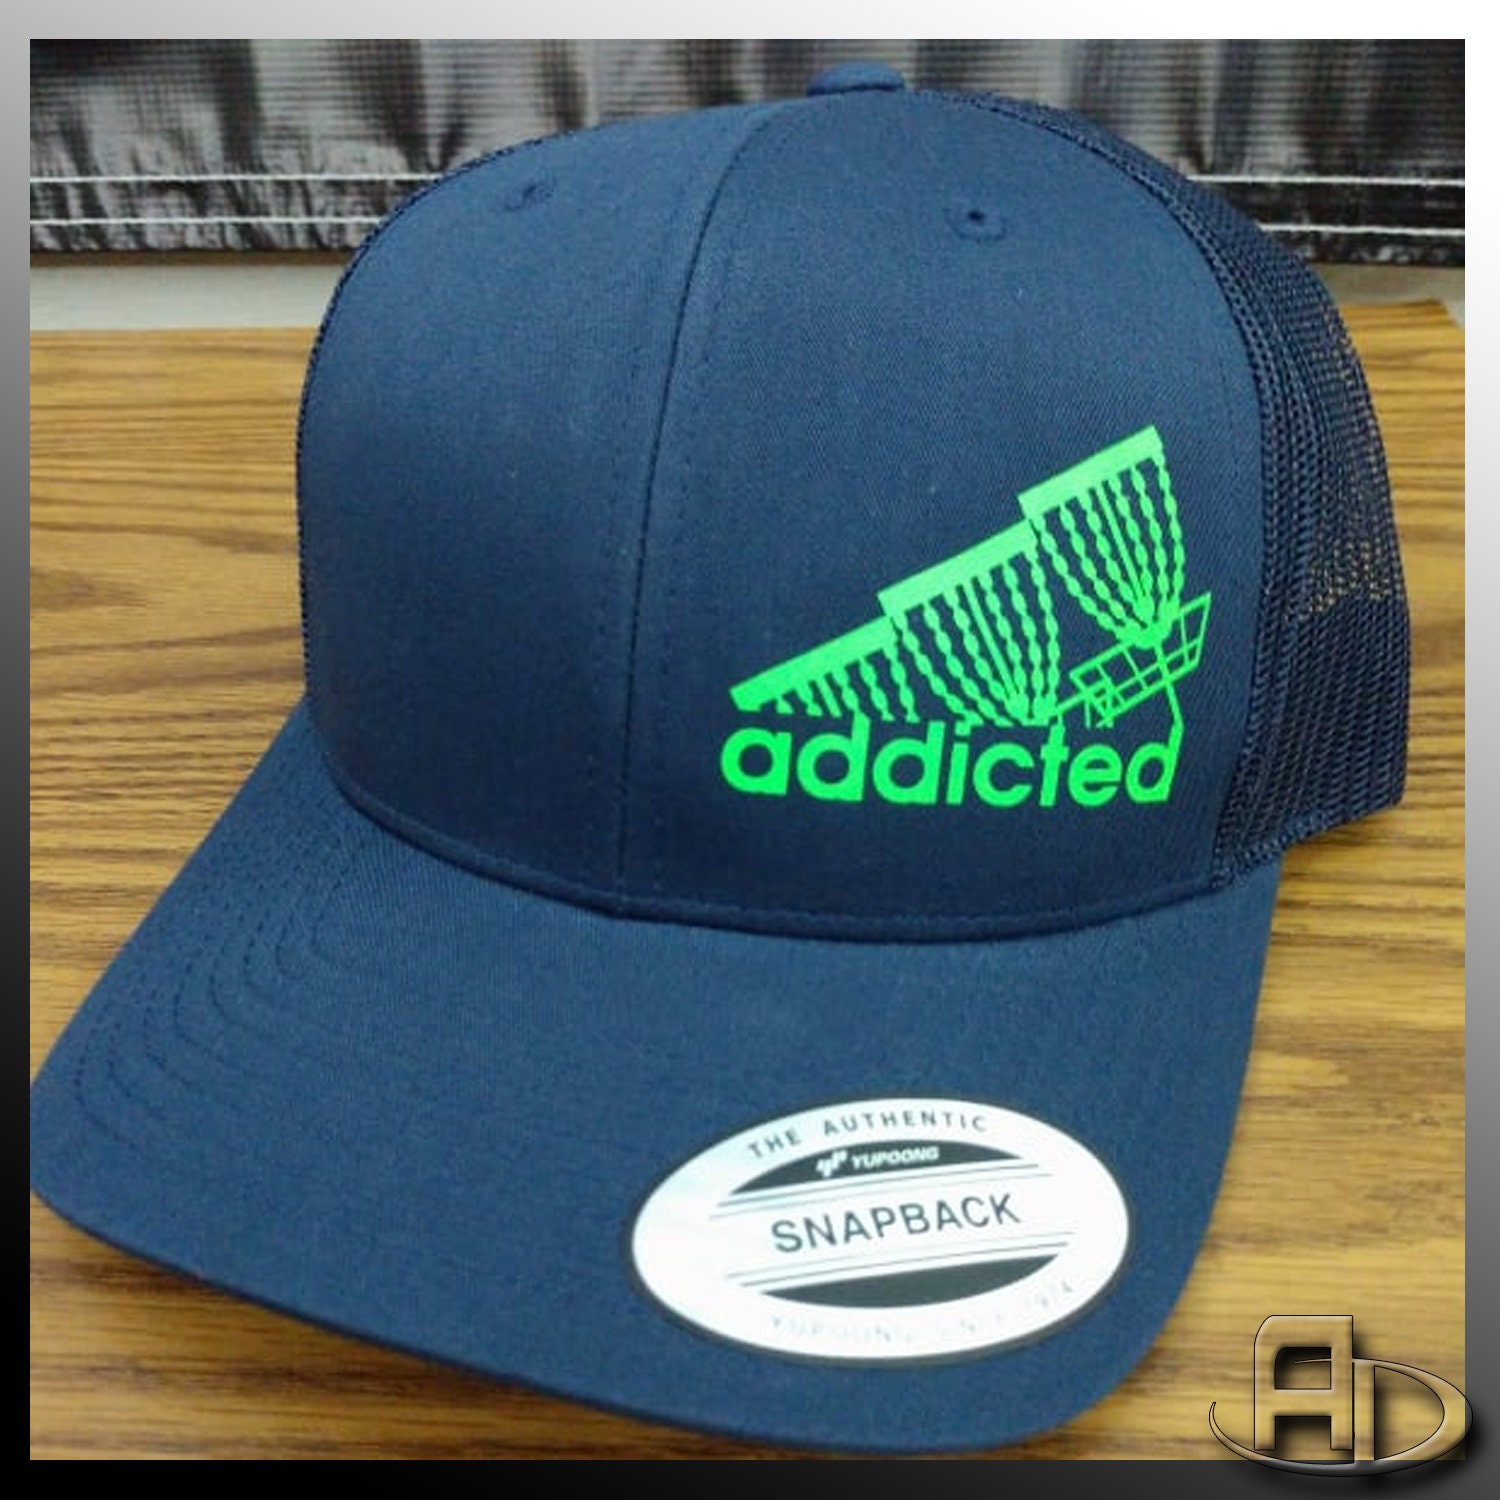 2d76d96ad Snap Back - Disc Golf Addicted - FlexFit / Yupoong Brand Snap Back ...